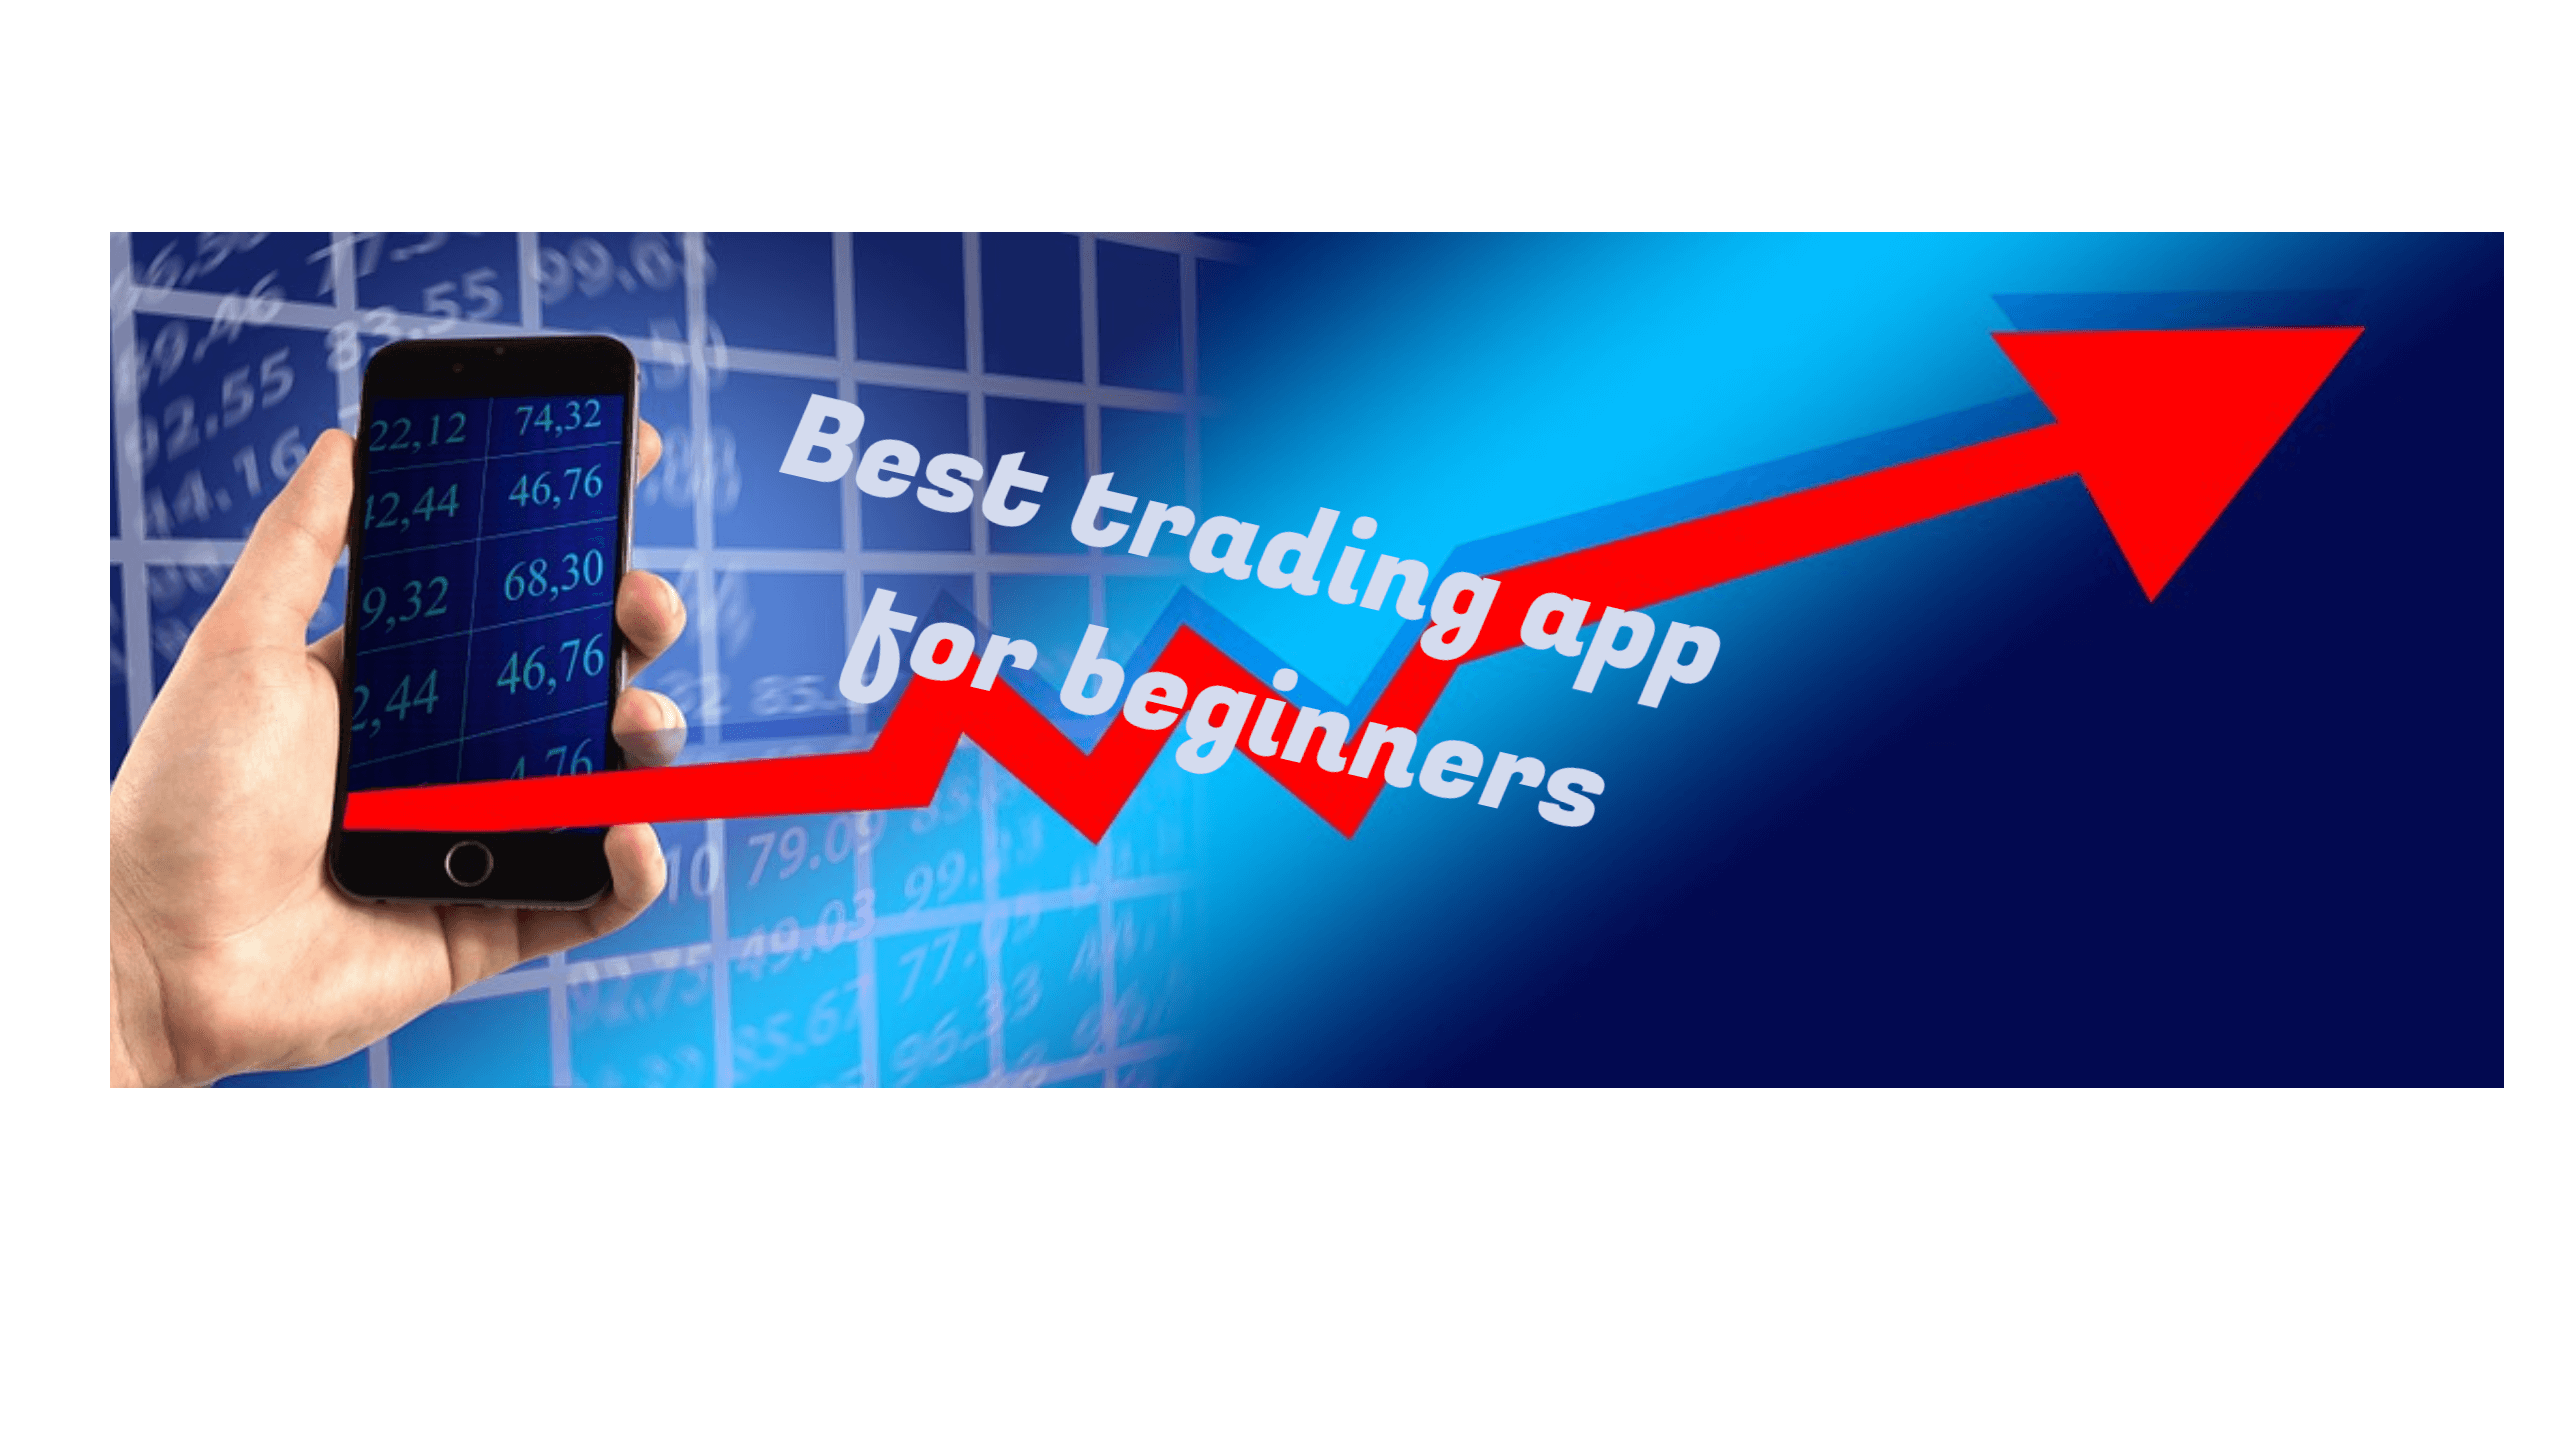 Best trading app for beginners 2018 to make Trading easy for Beginners